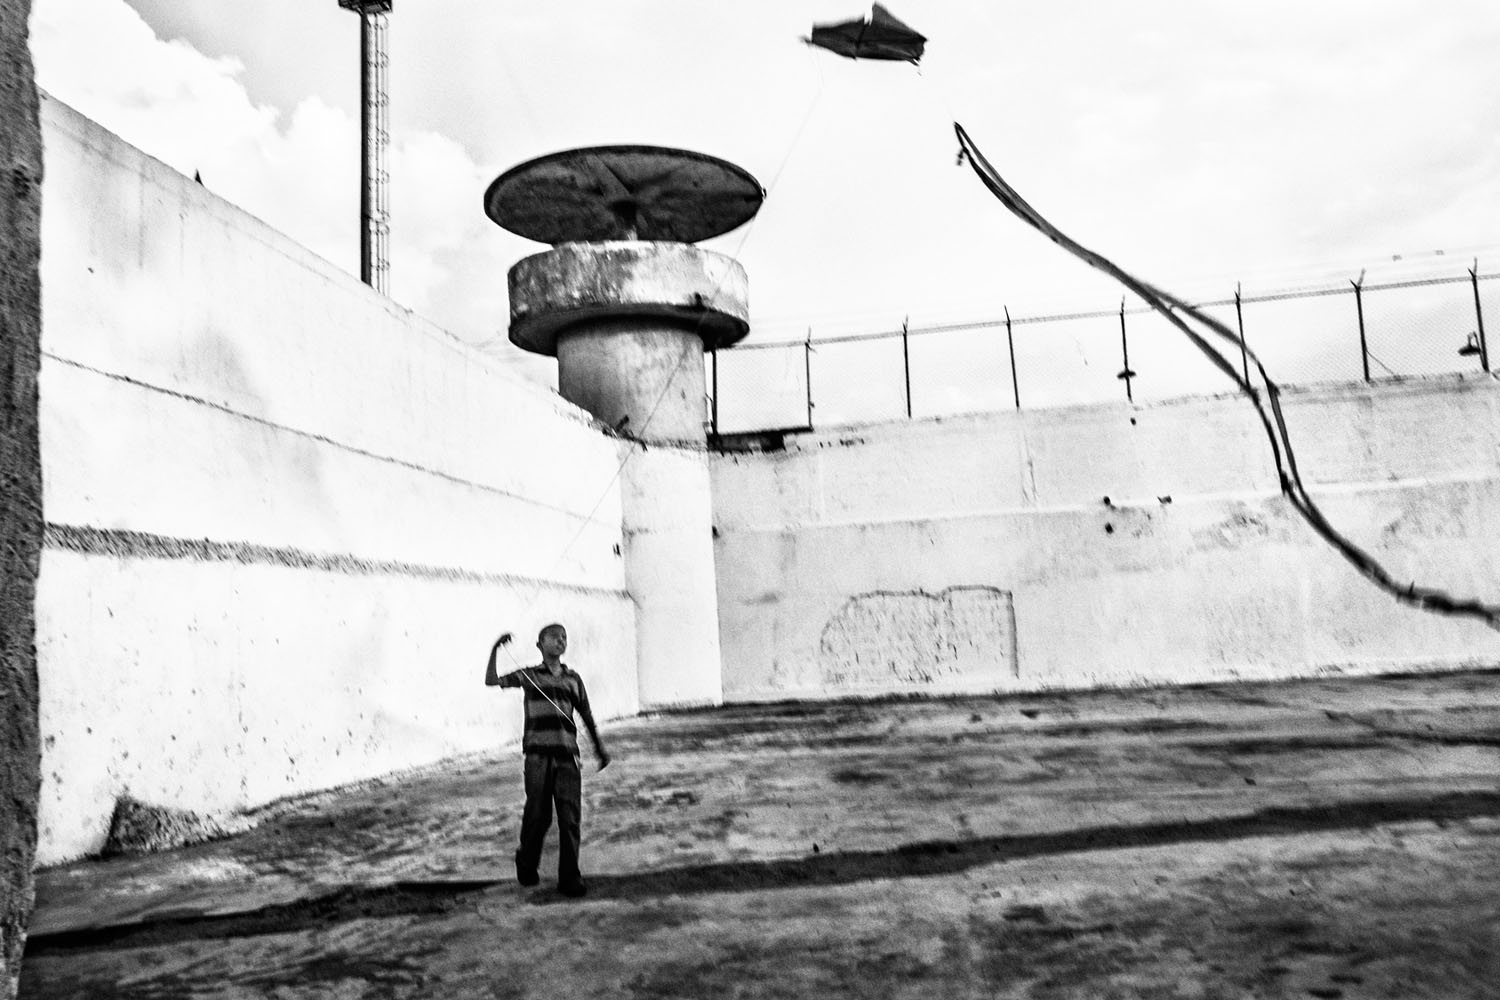 A child flies a kite in front of a security post of the Bolivarian National Guard, the official agency  responsible for ensuring the security of the Venezuelan prisons.